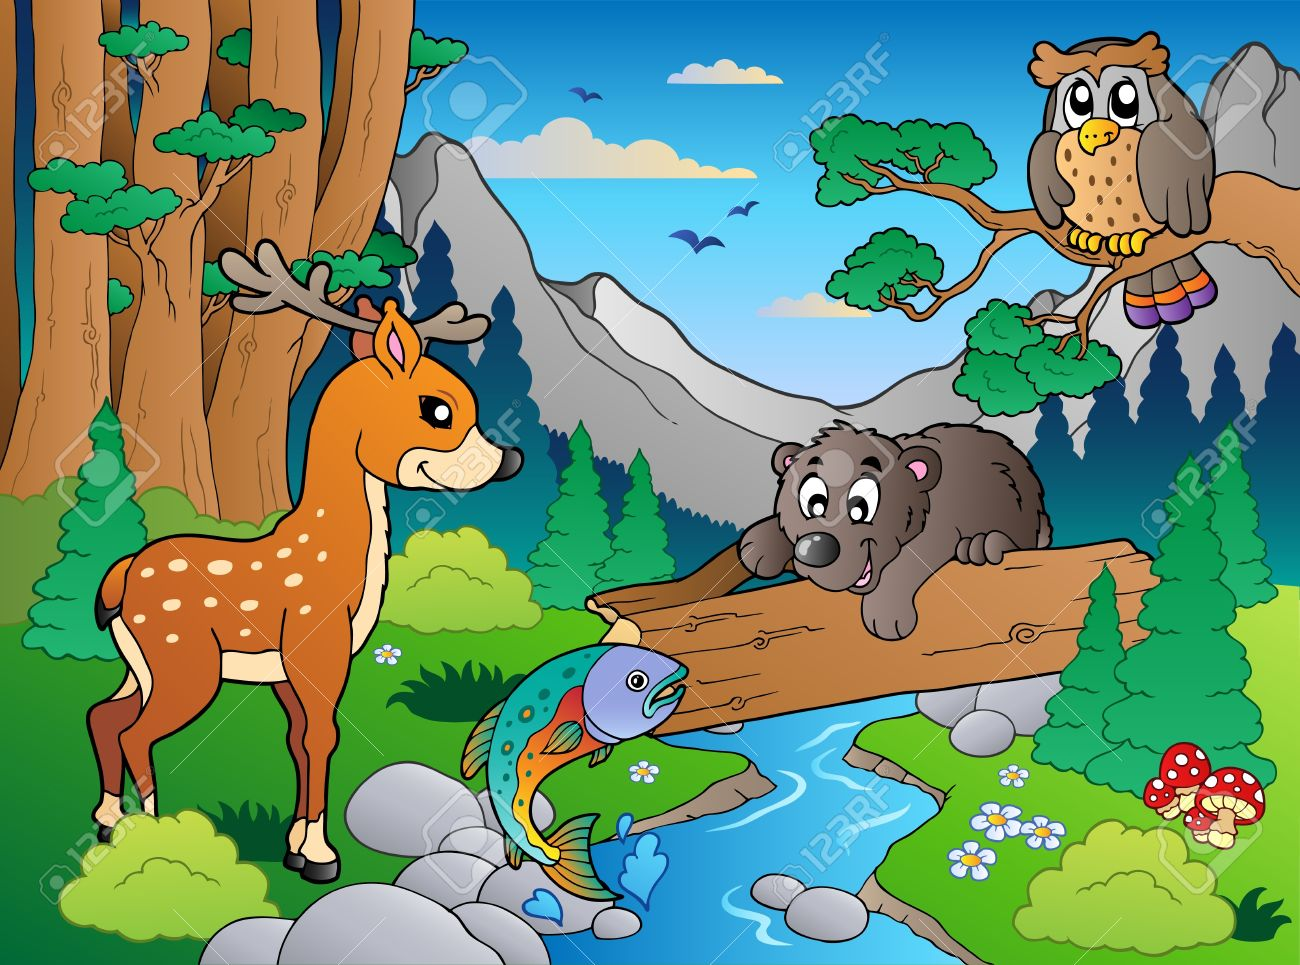 Forest scene with various animals Stock Vector - 9864343